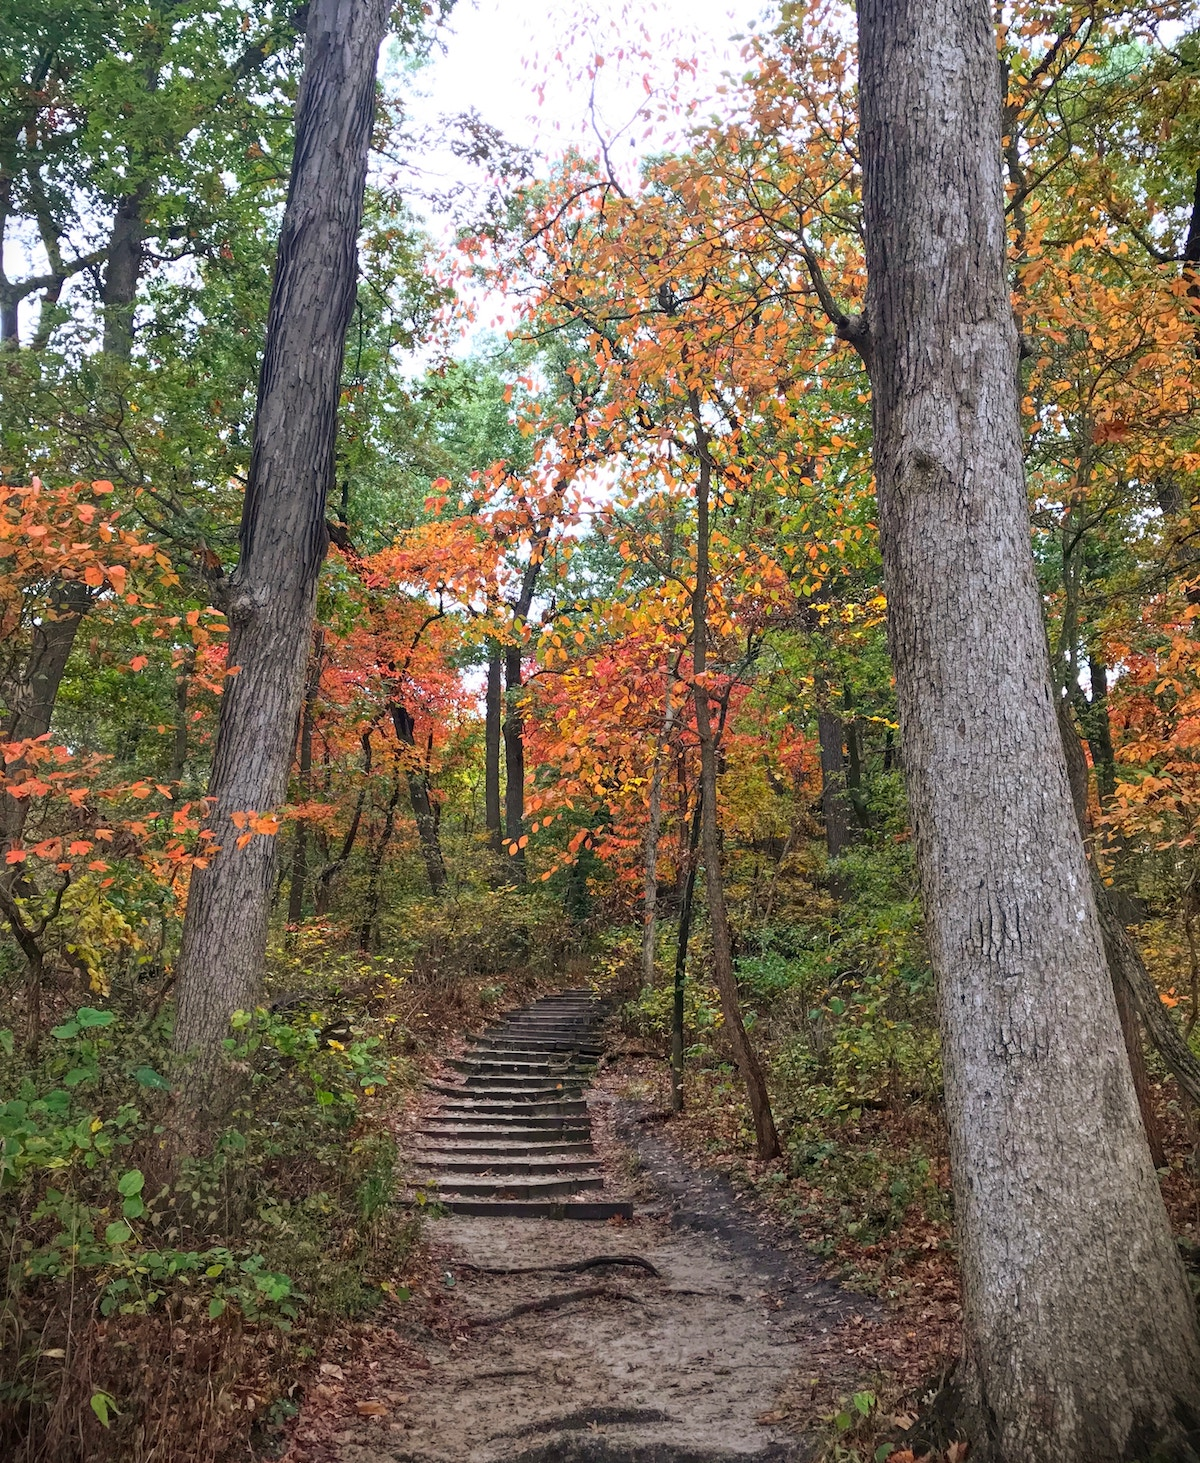 trees with fall foliage lining a trail with wooden steps